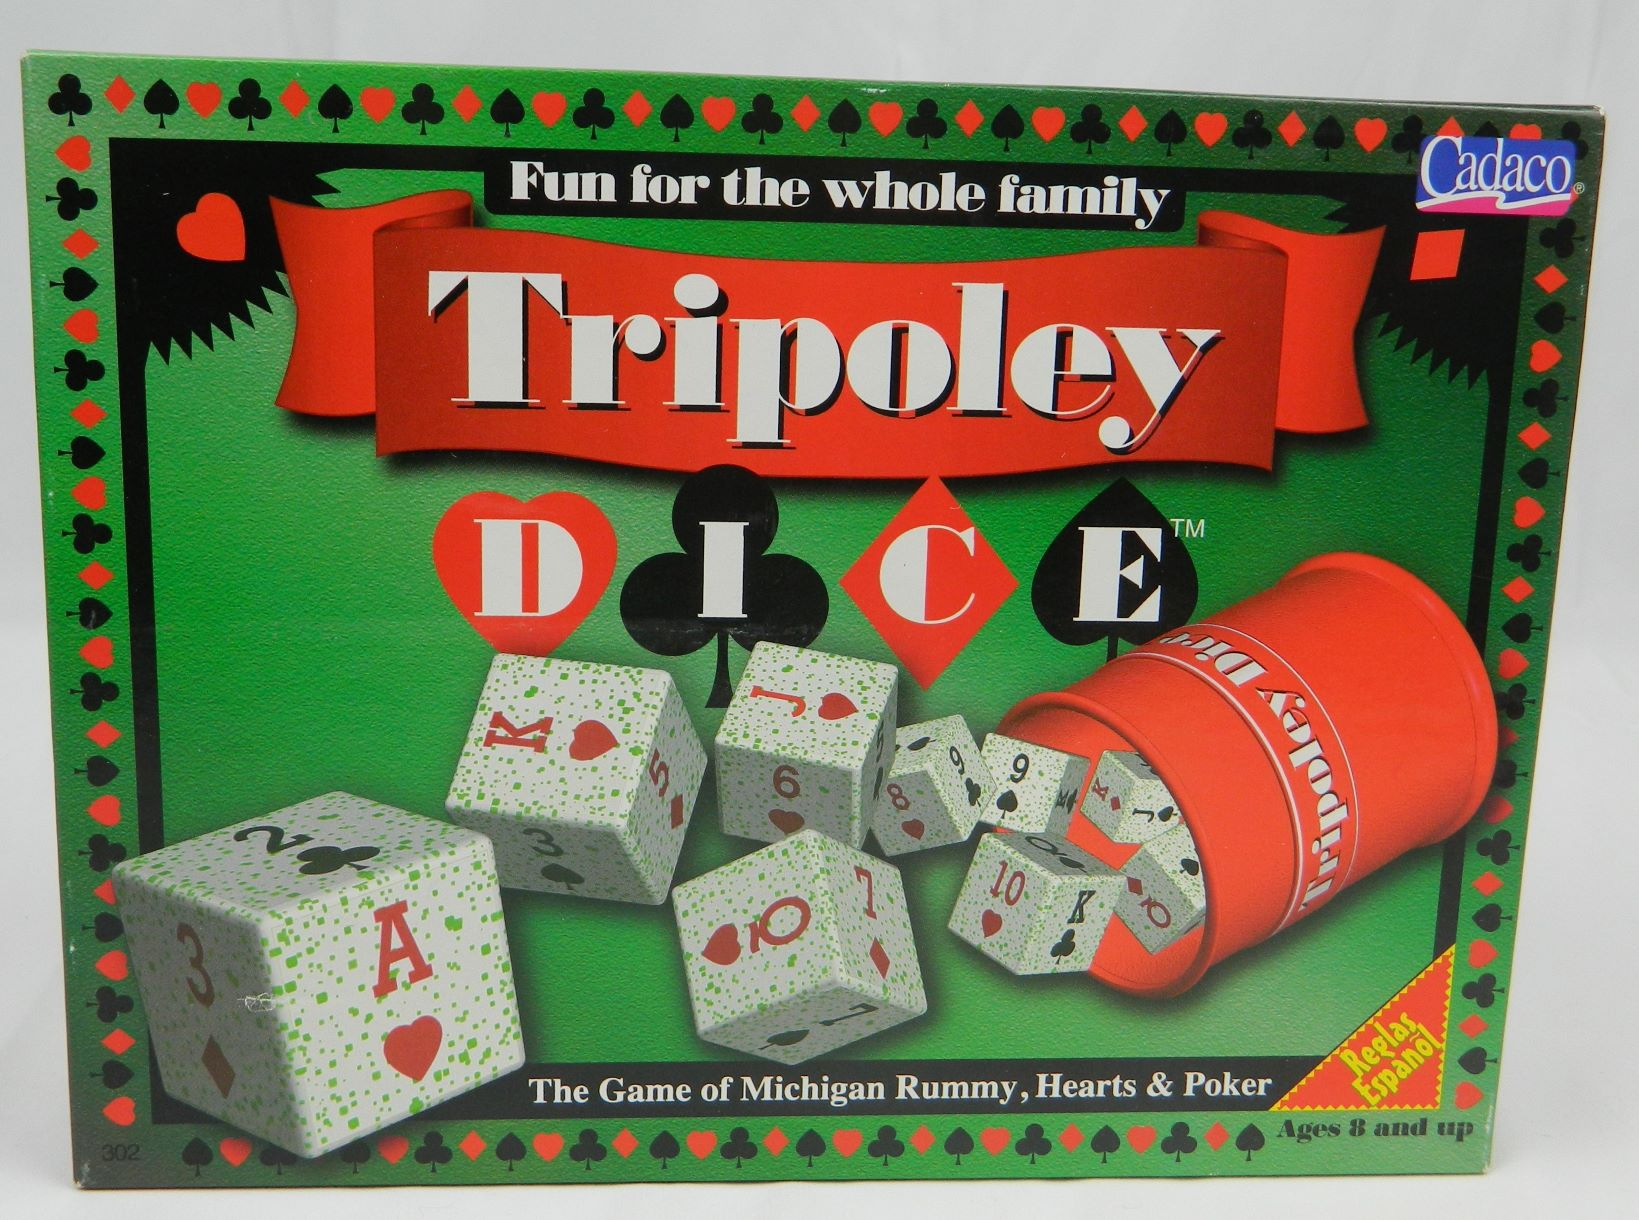 Box for Tripoley Dice